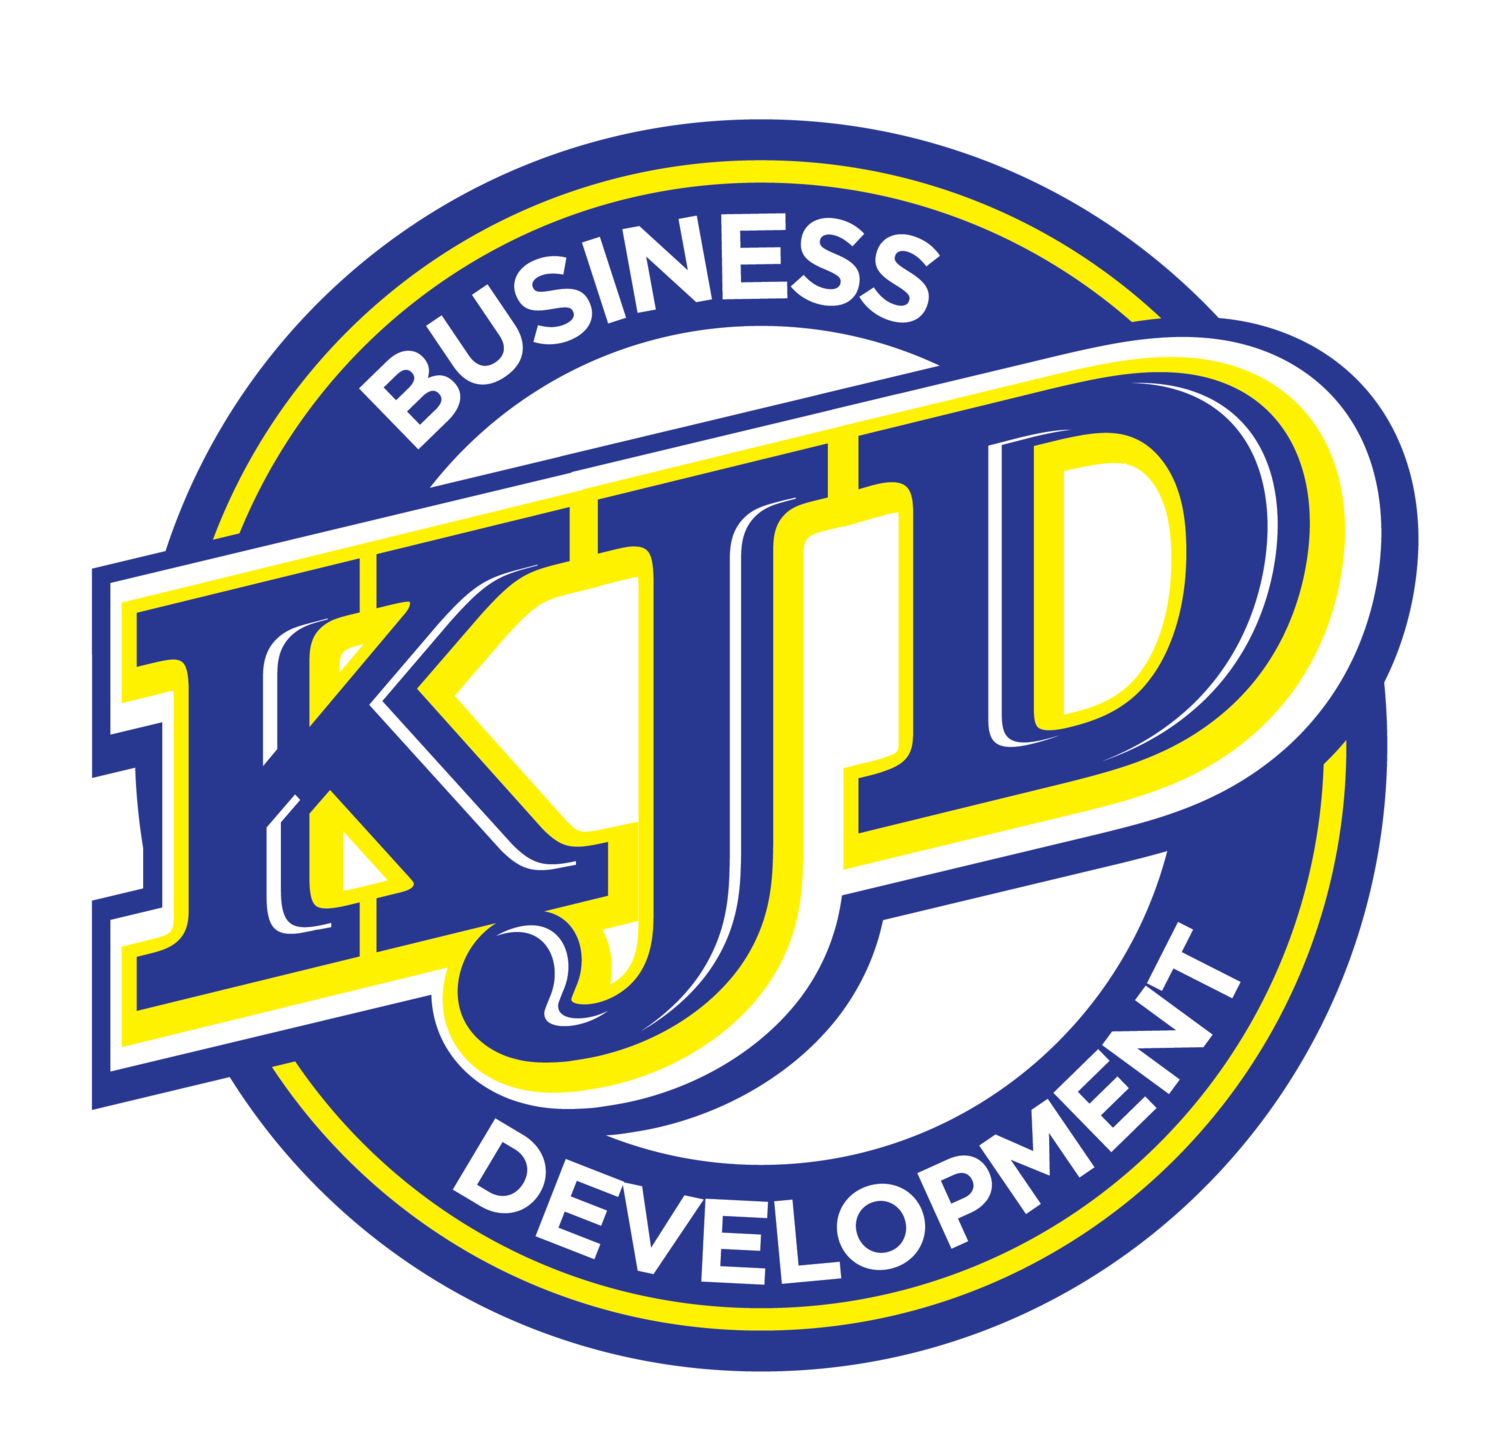 KJD Business Development